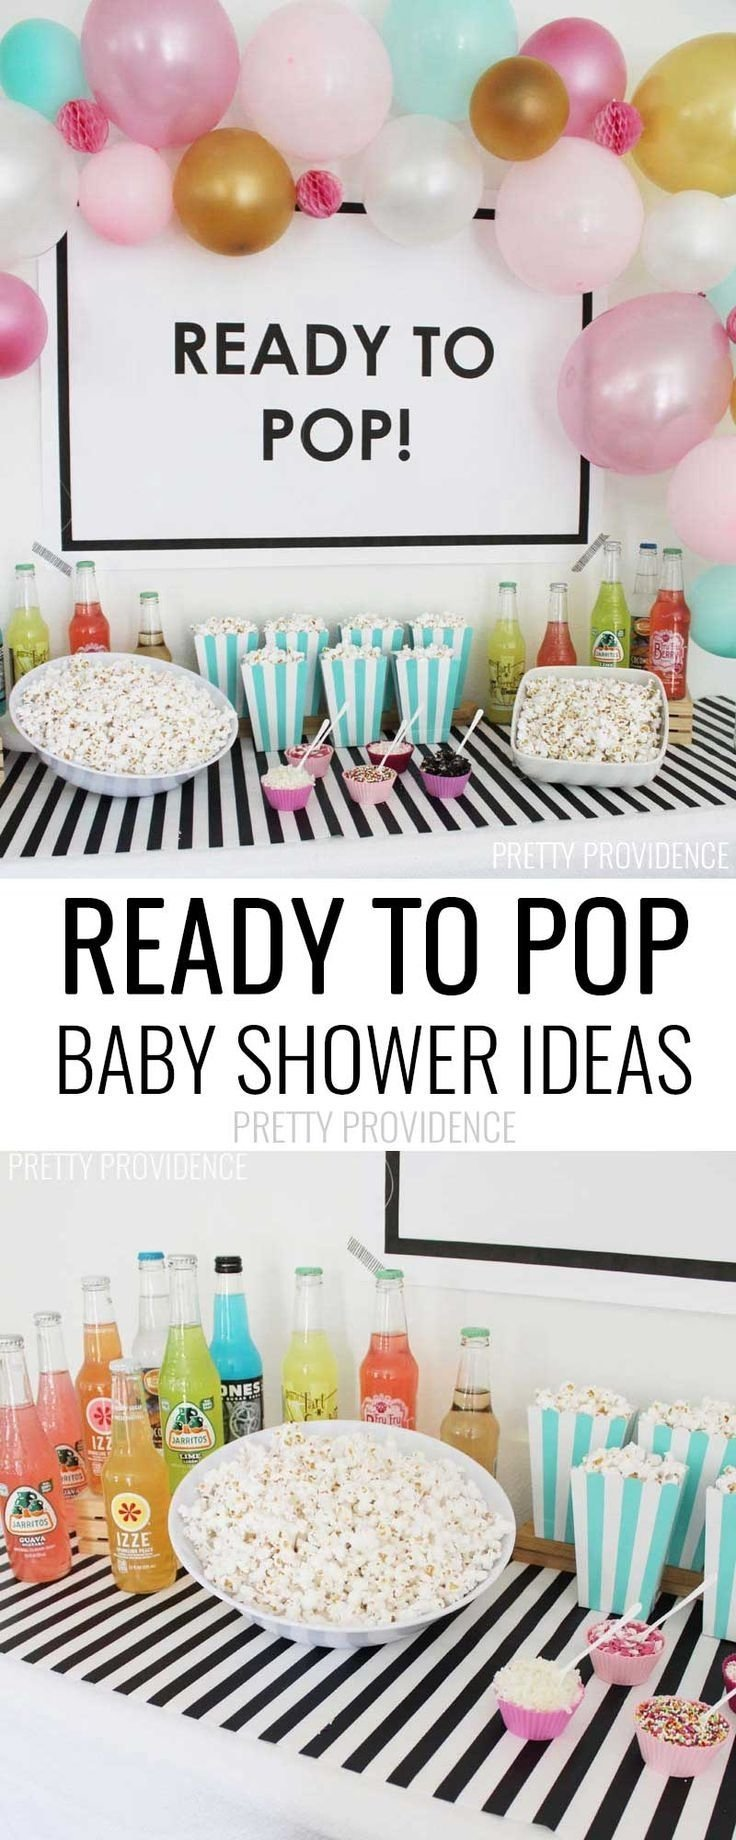 10 Attractive About To Pop Baby Shower Ideas ready to pop baby shower baby shower themes theme ideas and babies 2020